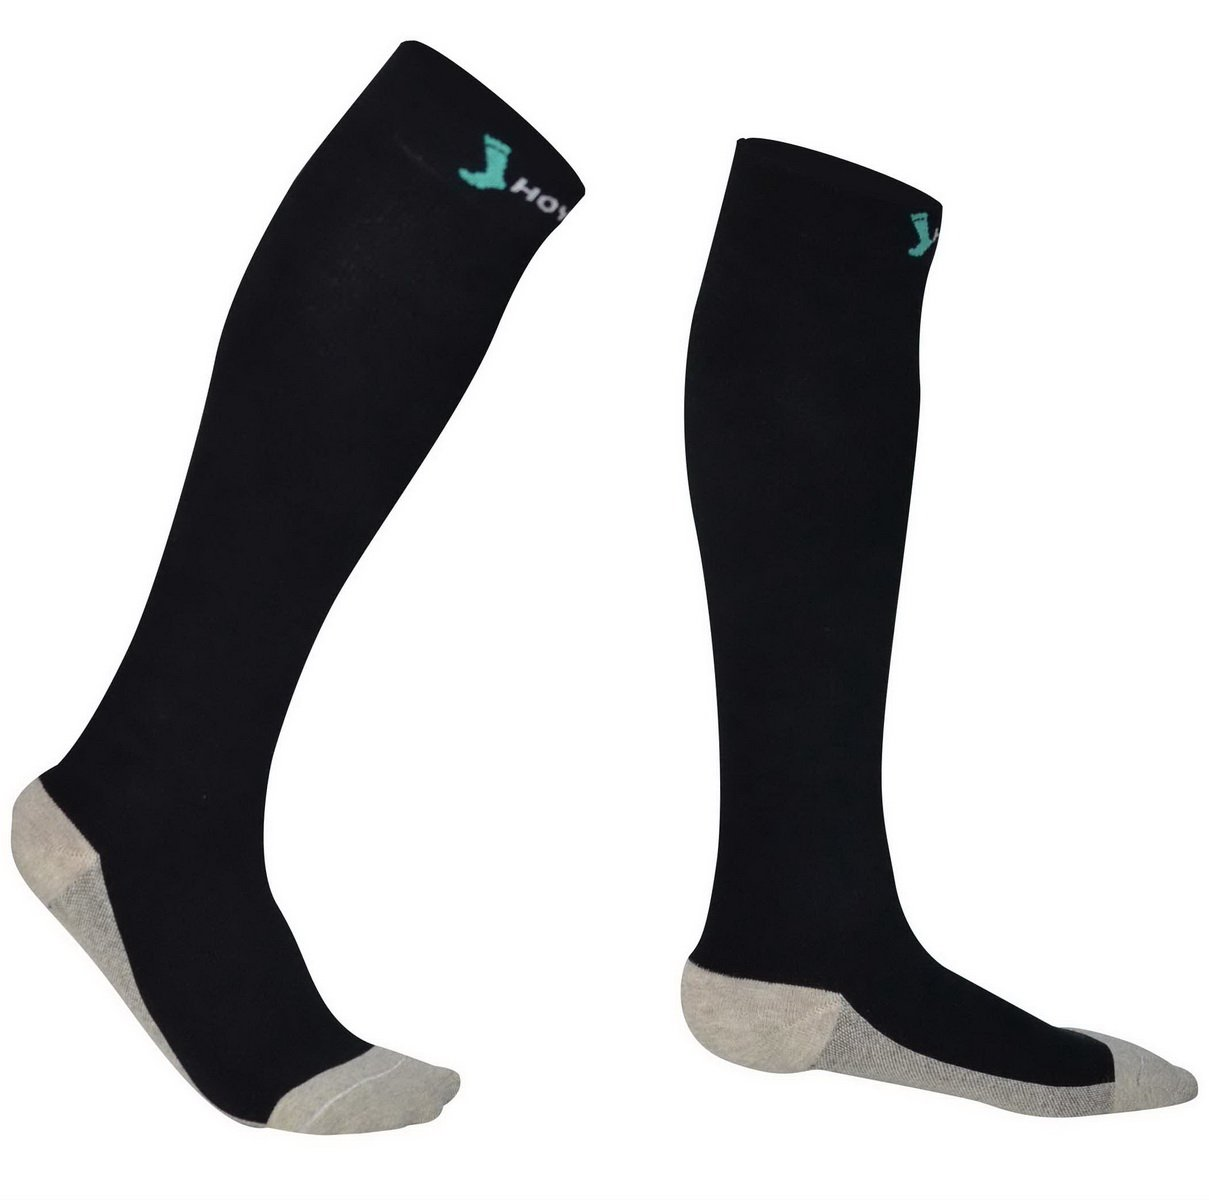 Fully Cushioned Merino Wool - Comfortable Thermo 20-30 mmHg Graduated Winter Compression Socks for...